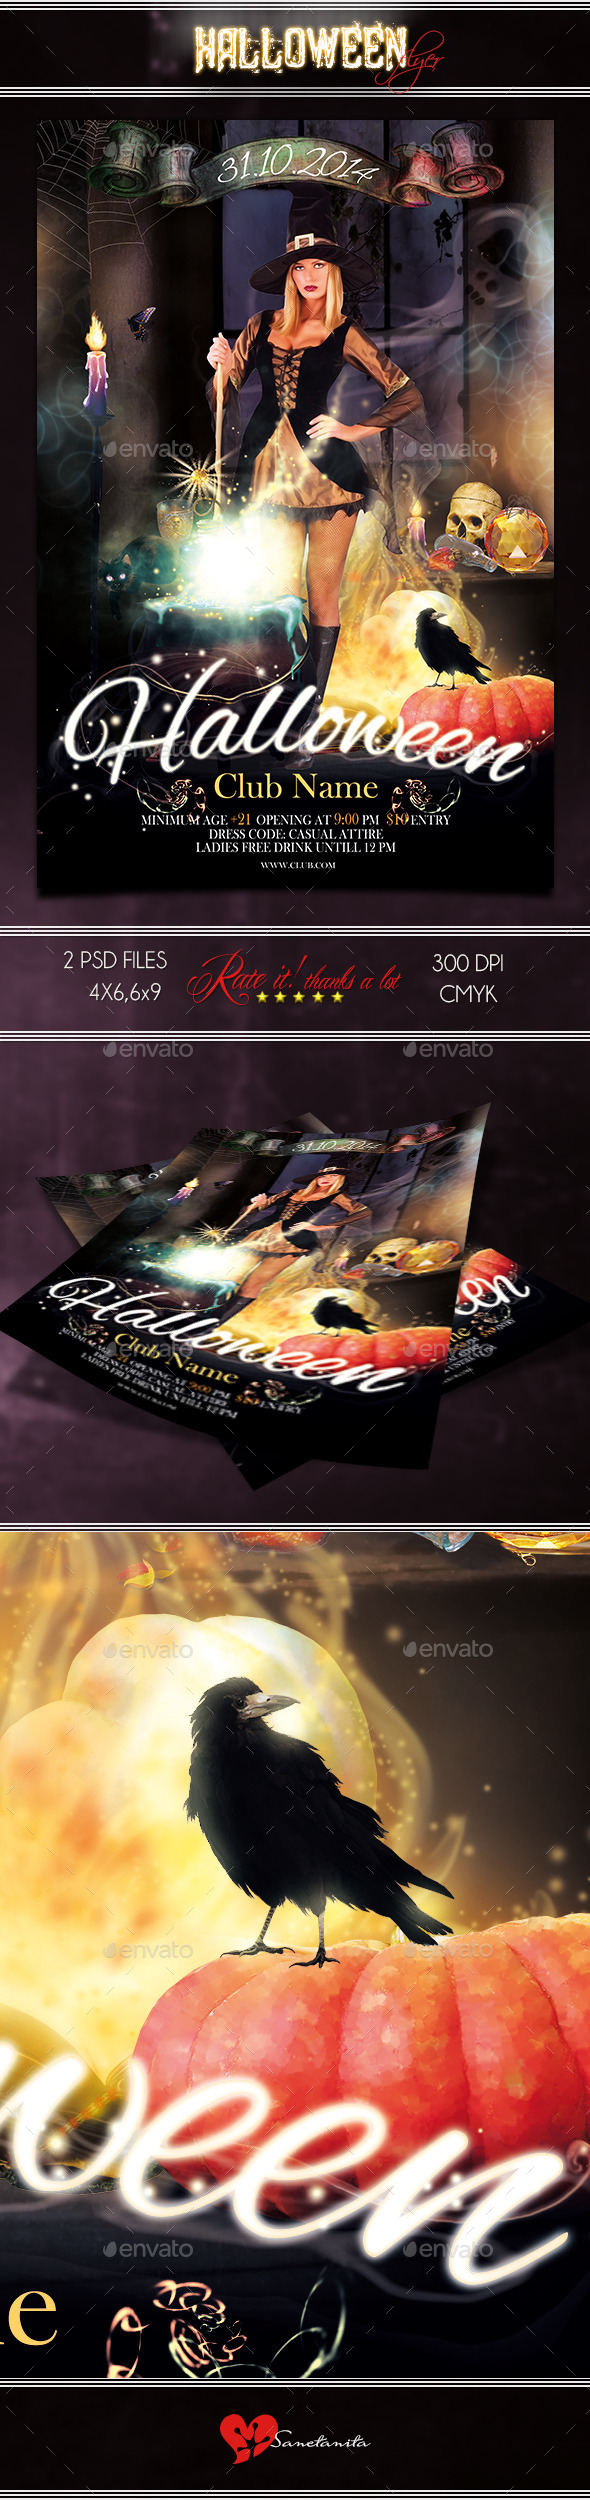 GraphicRiver Halloween Flyer 2 8853467